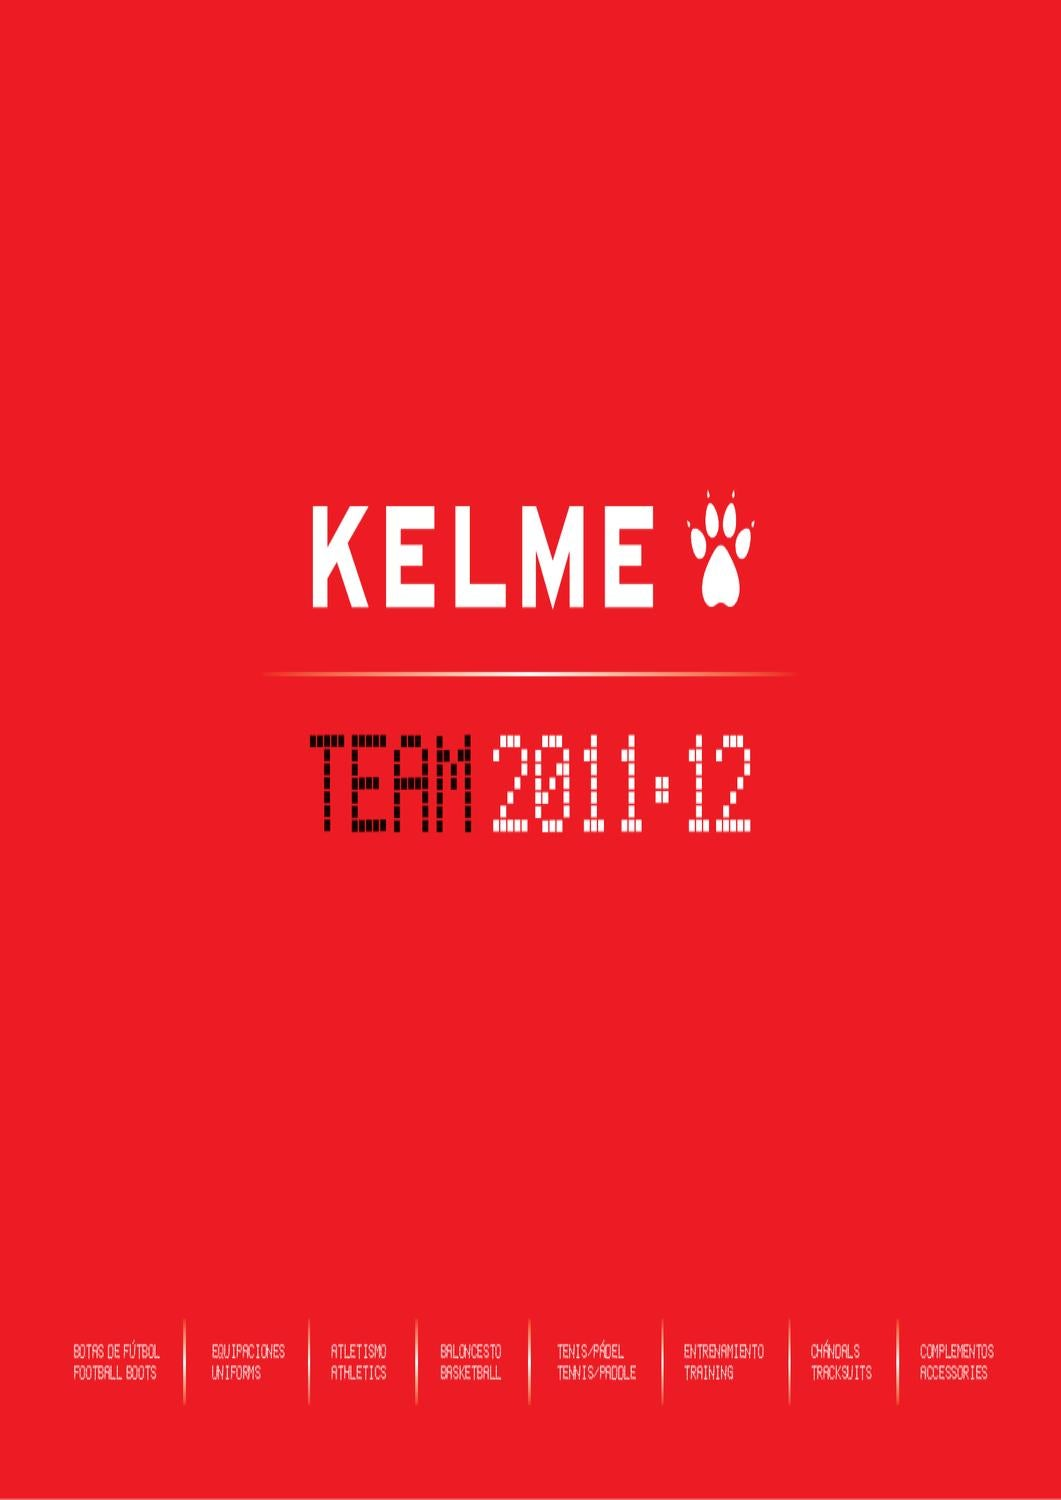 d96f5d58bd Kelme Team 2011-12 by Joan Grasa - issuu